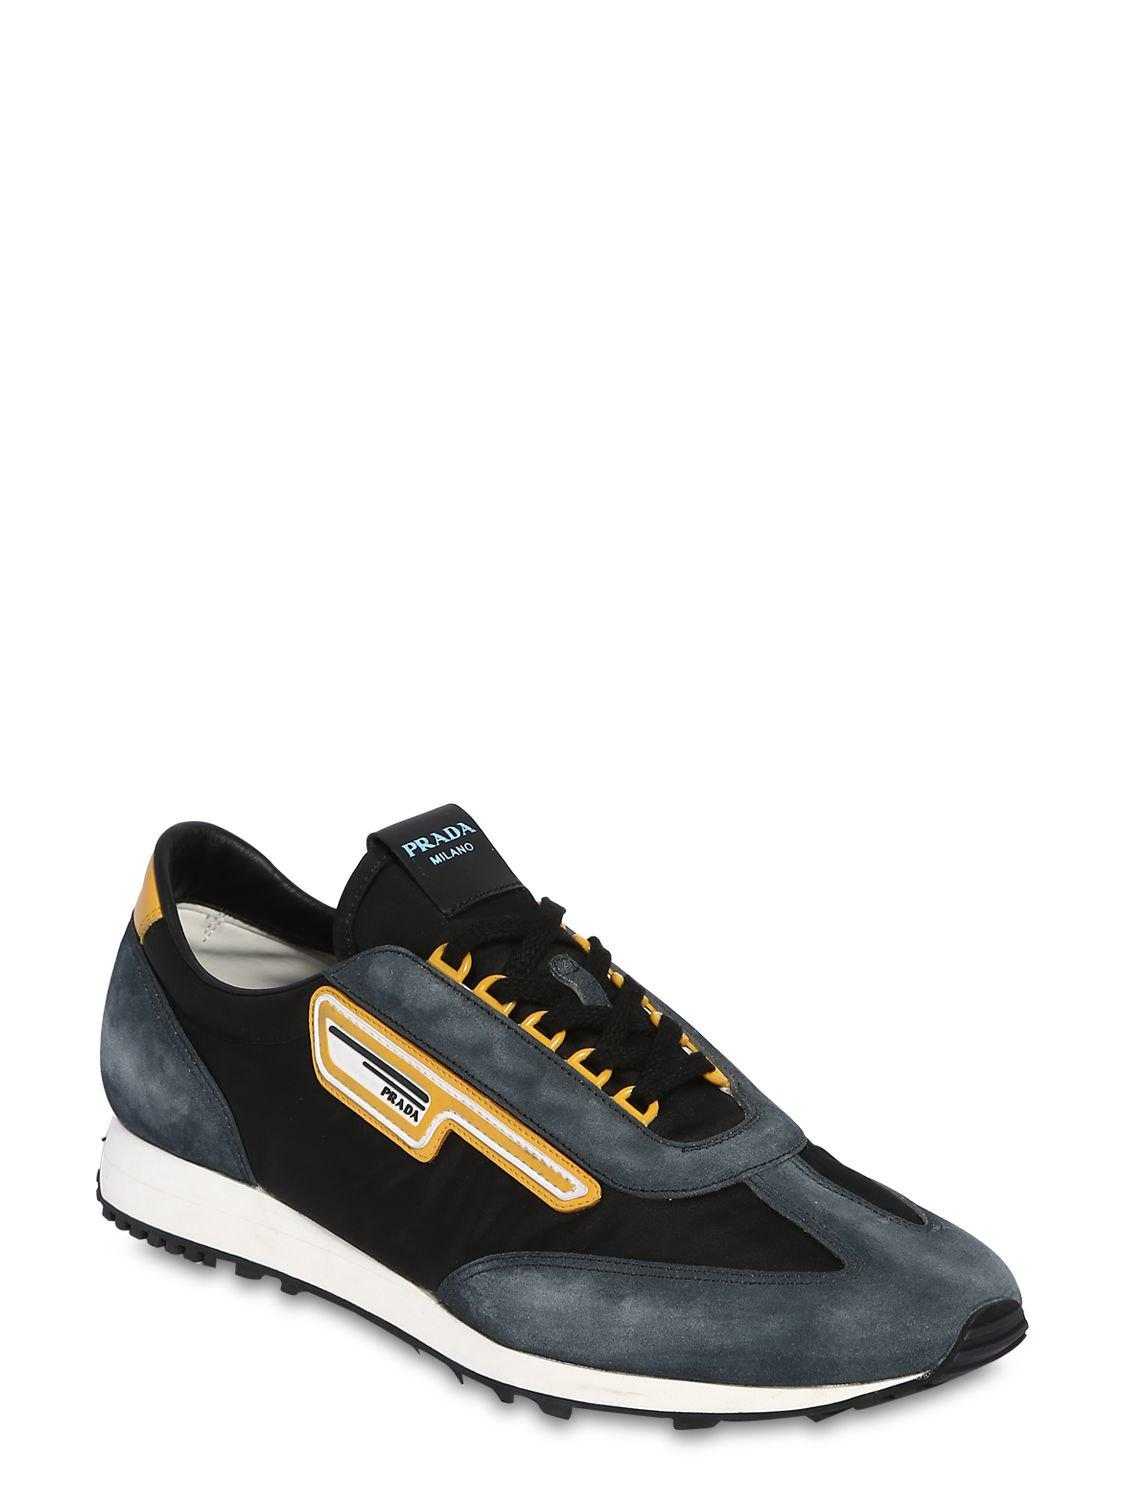 a80f7820cc3a Prada - Black Milano 70 Nylon   Suede Running Sneakers for Men - Lyst. View  fullscreen